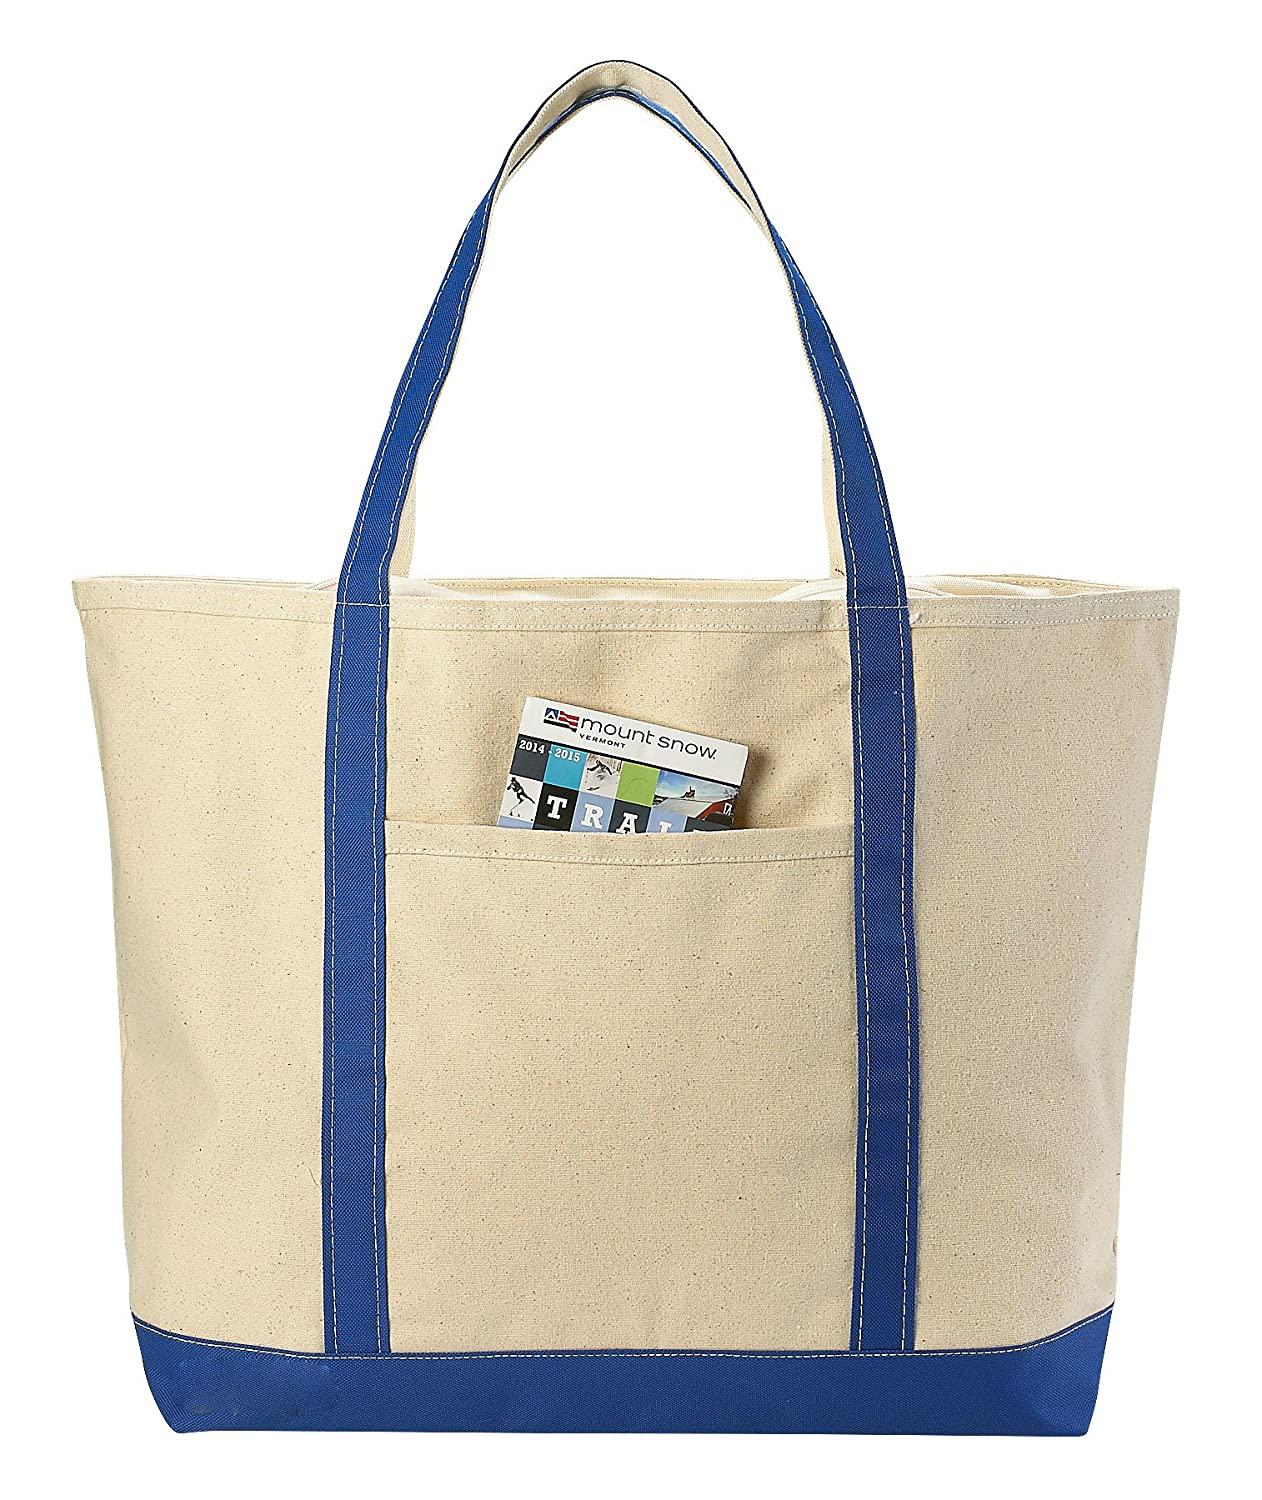 Canvas Tote Beach Bag, Assorted Colors - 22